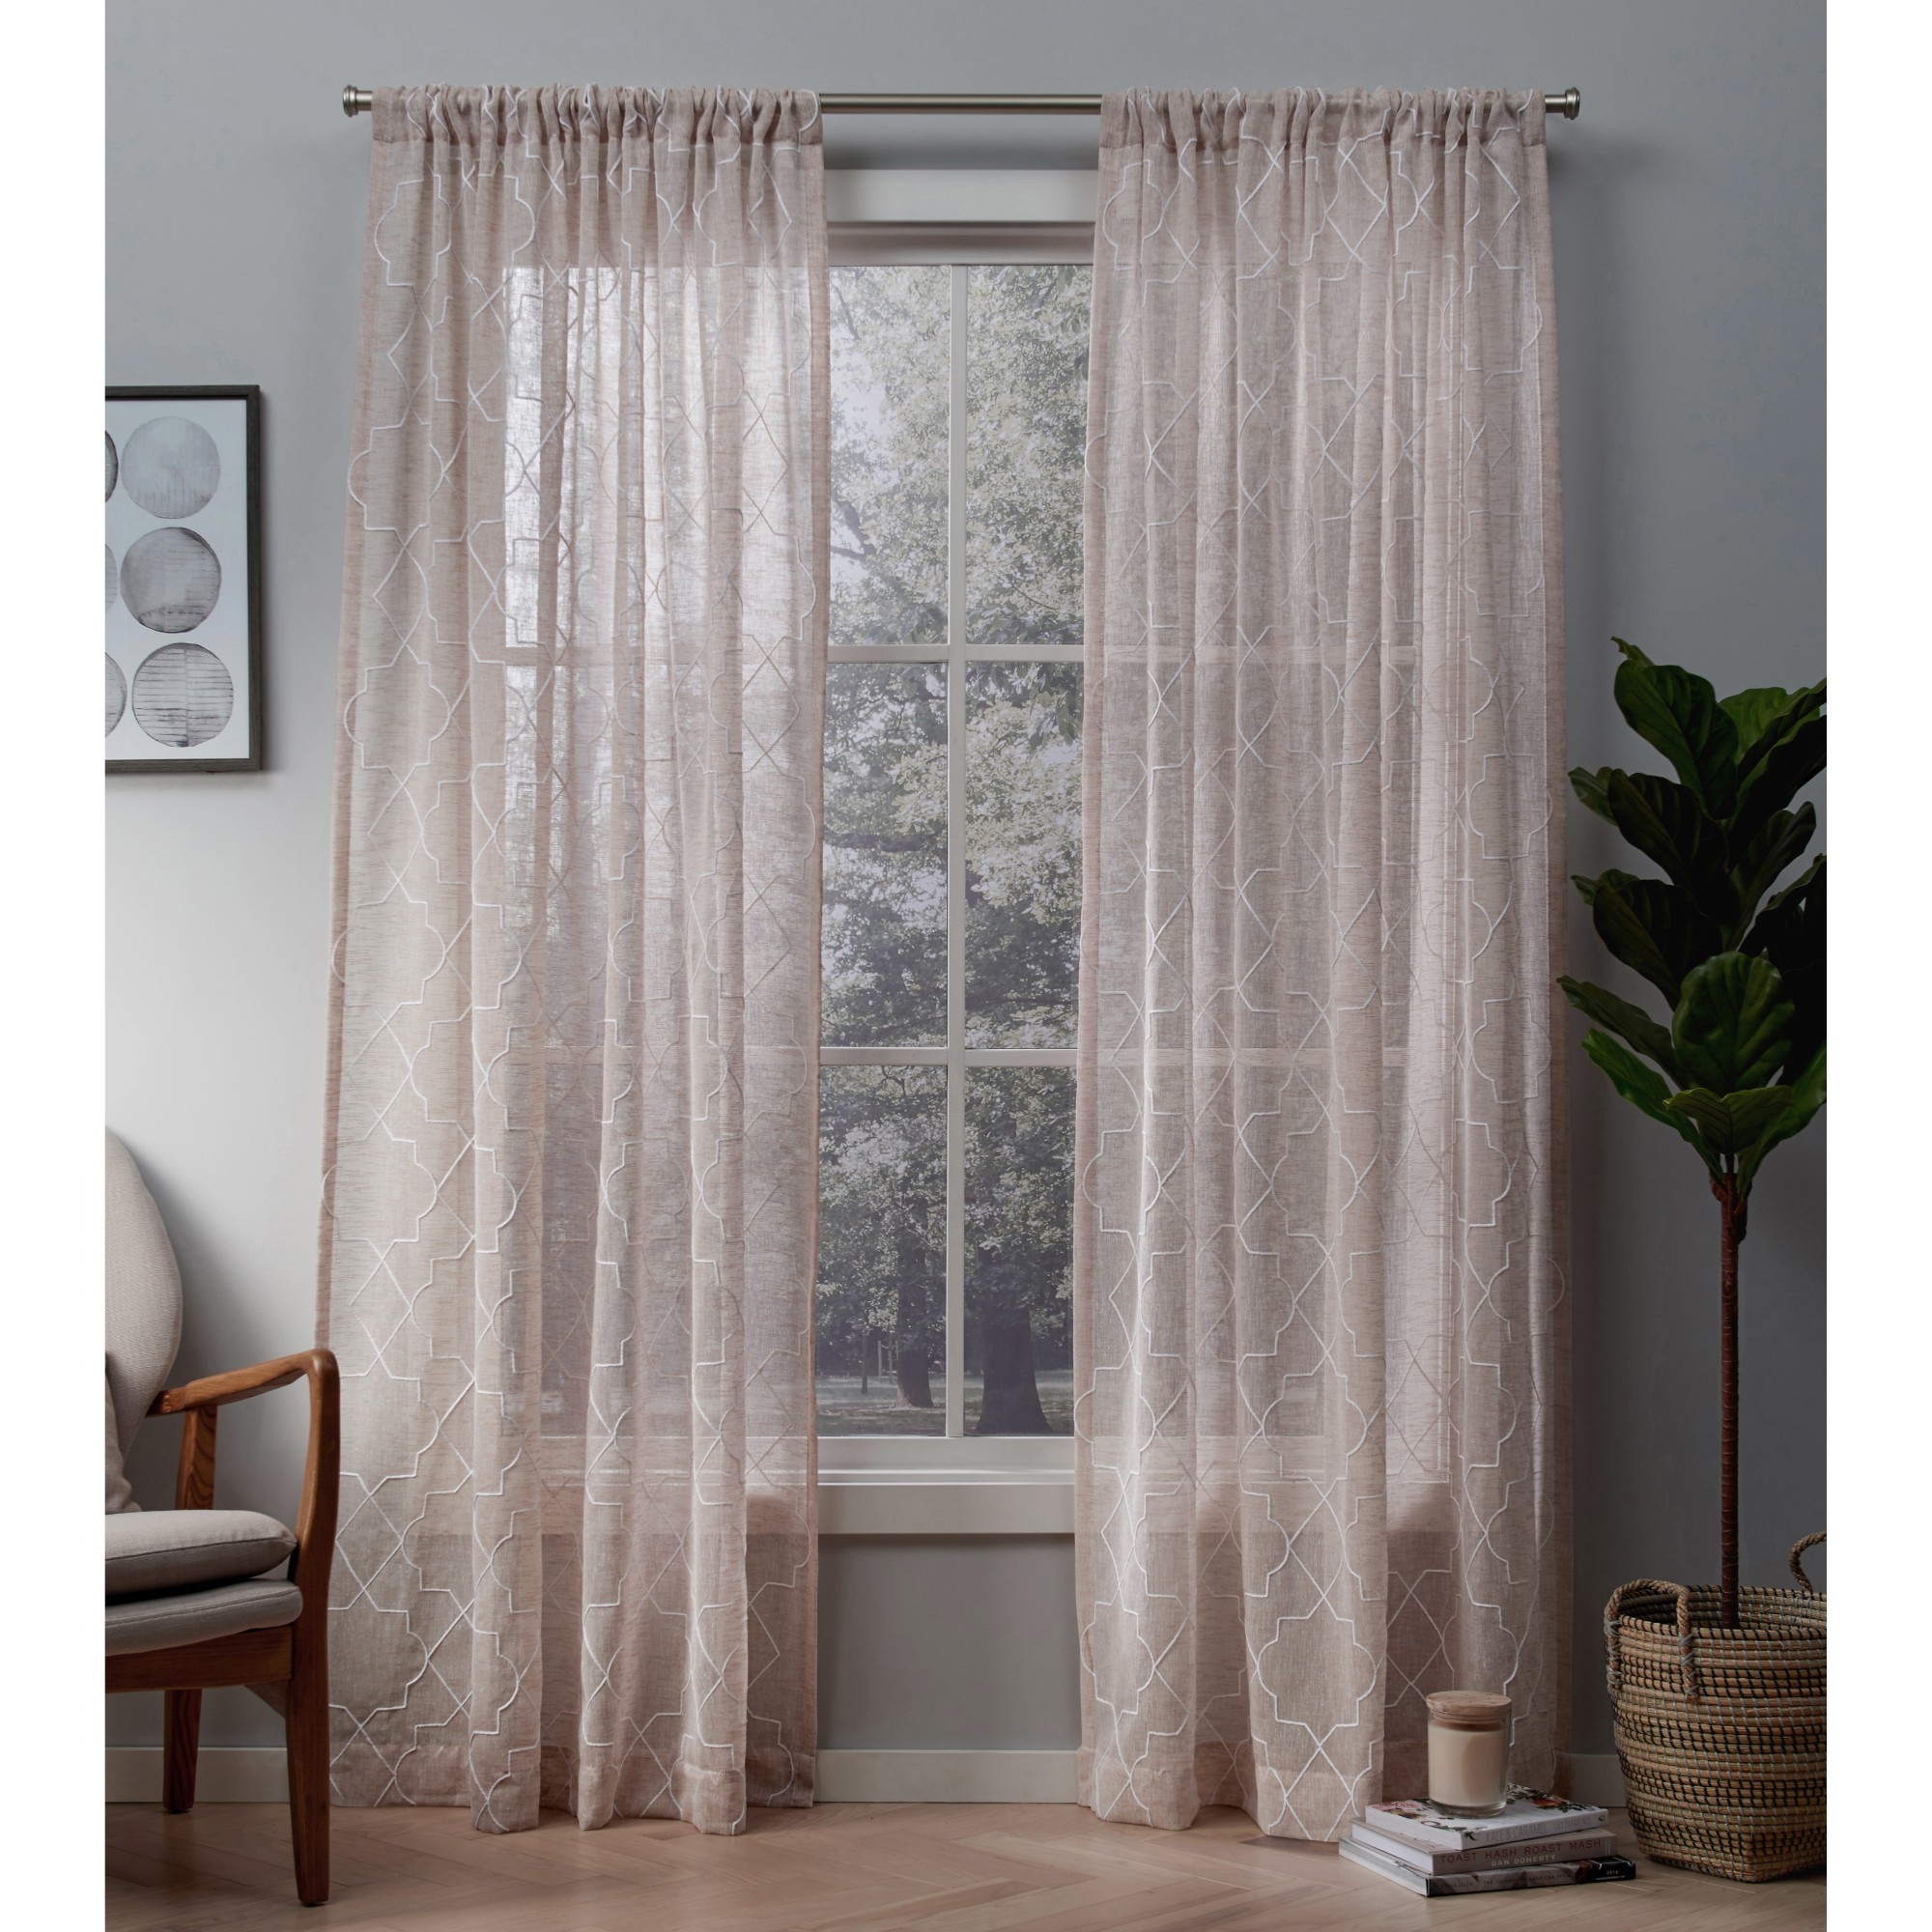 Exclusive Home Cali Embroidered Sheer Window Curtain Panel Pair with Rod Pocket